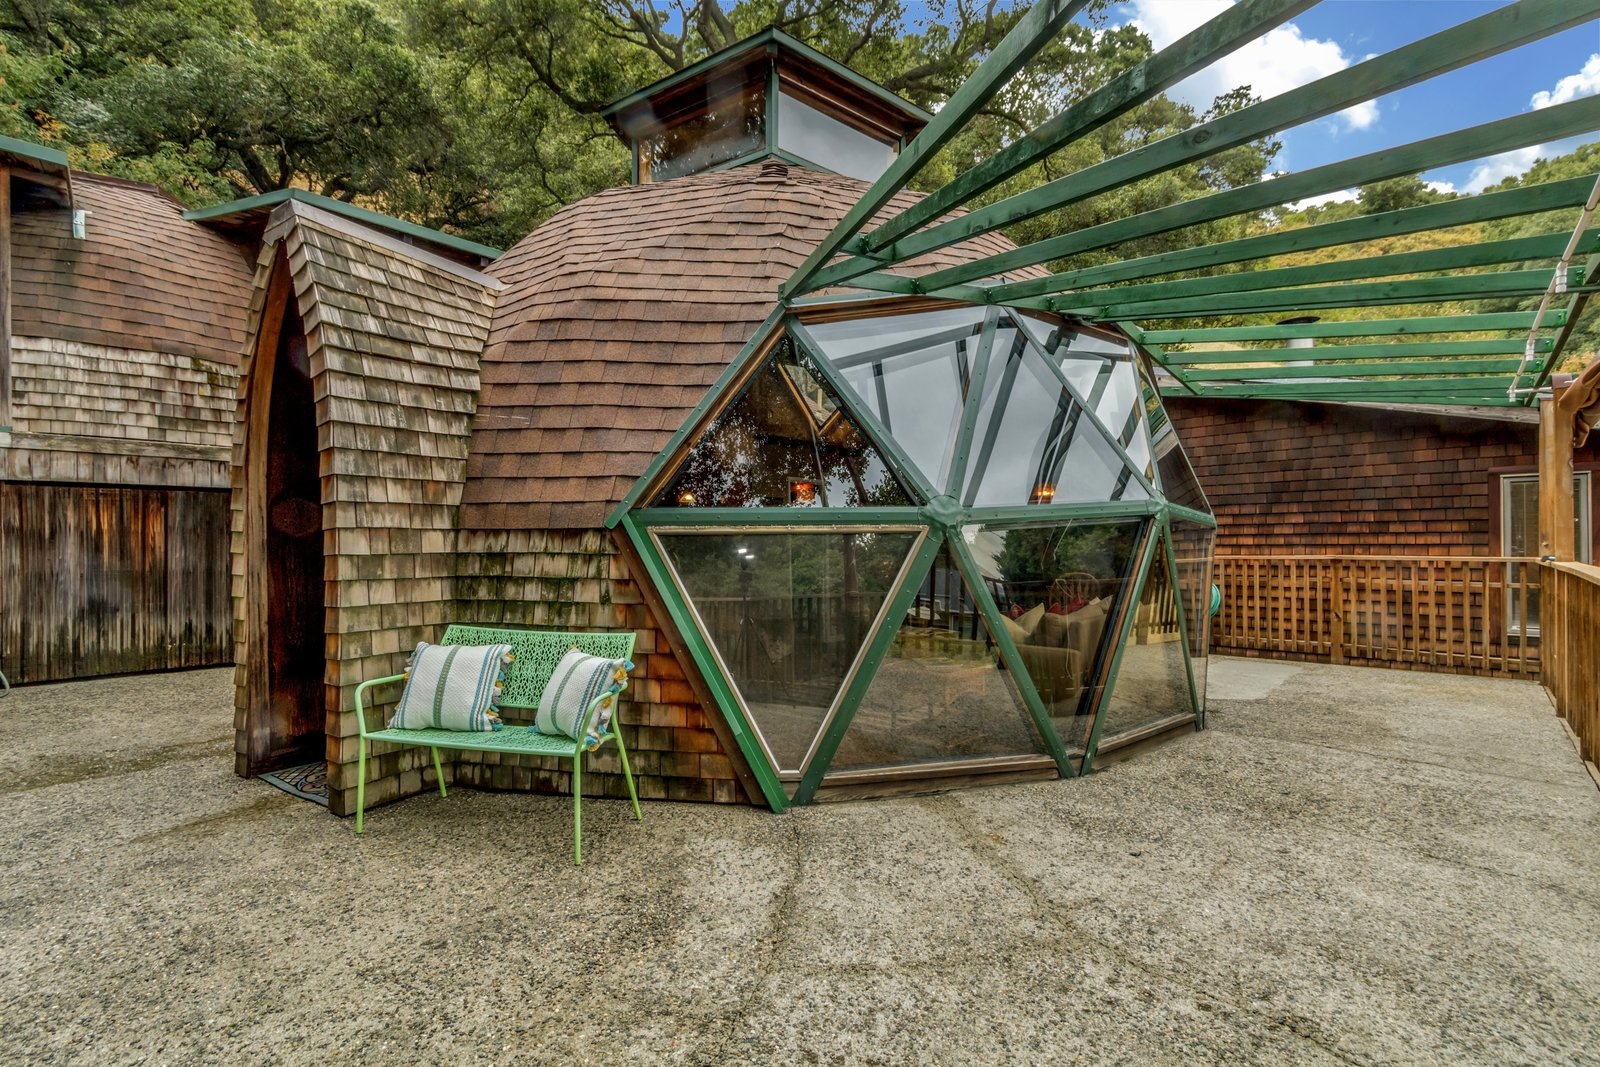 It Took Seven Years To Build This Geodesic Dome By Hand